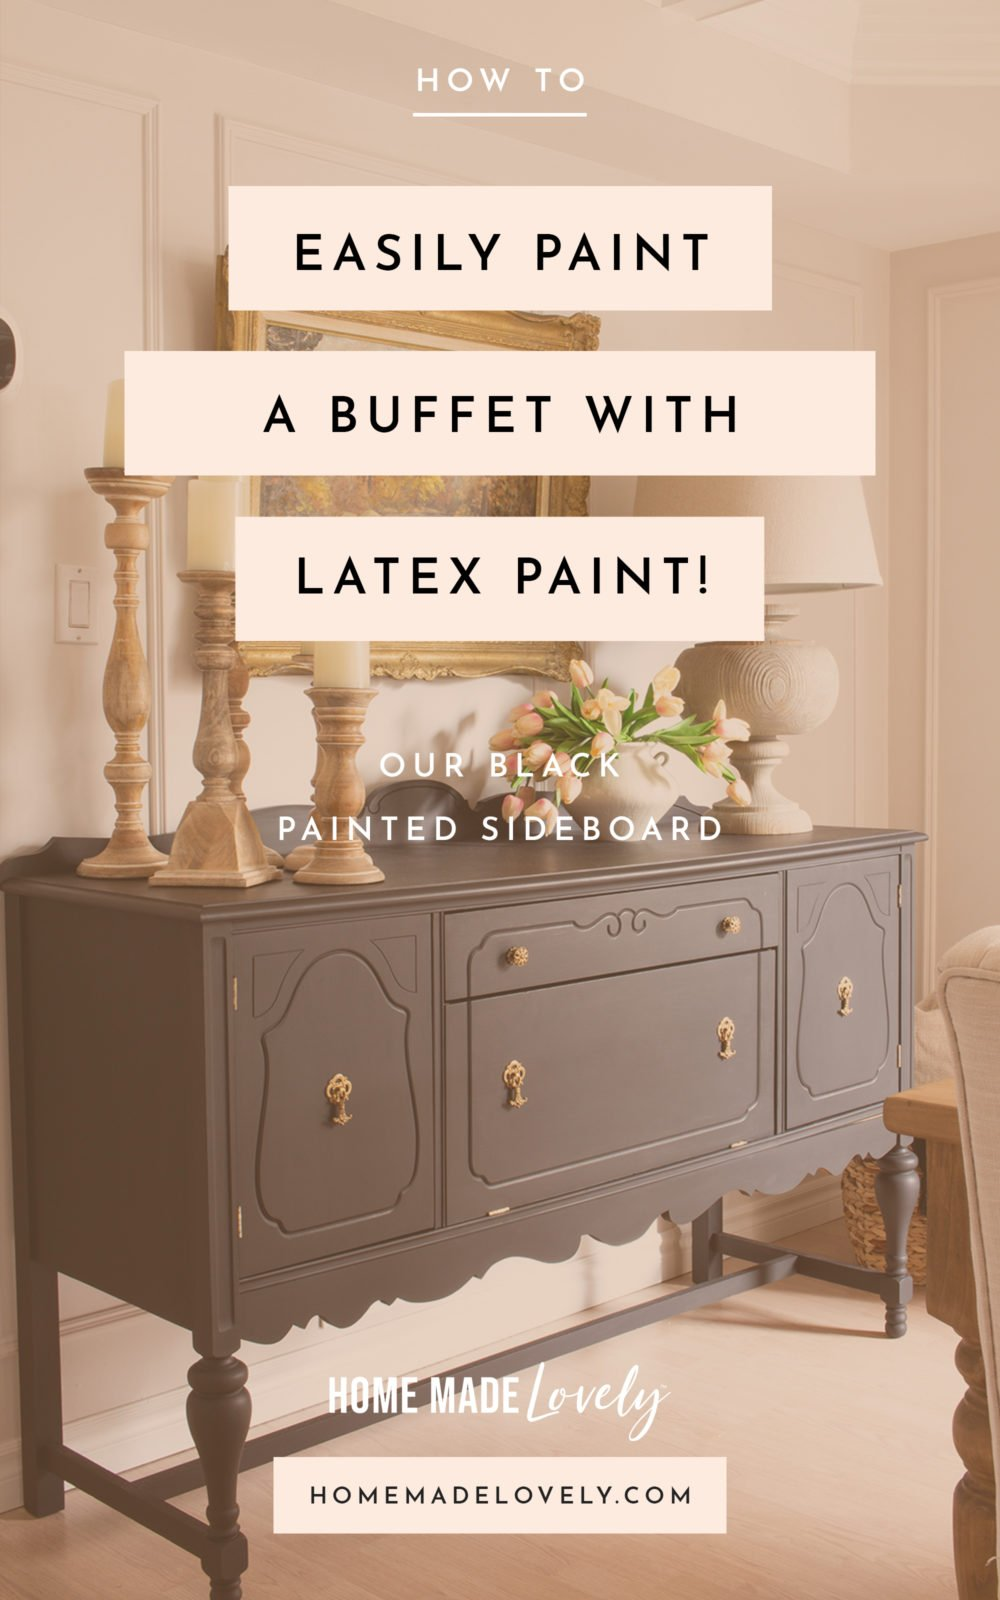 Our black painted buffet sideboard in dining room with text overlay of blog post title